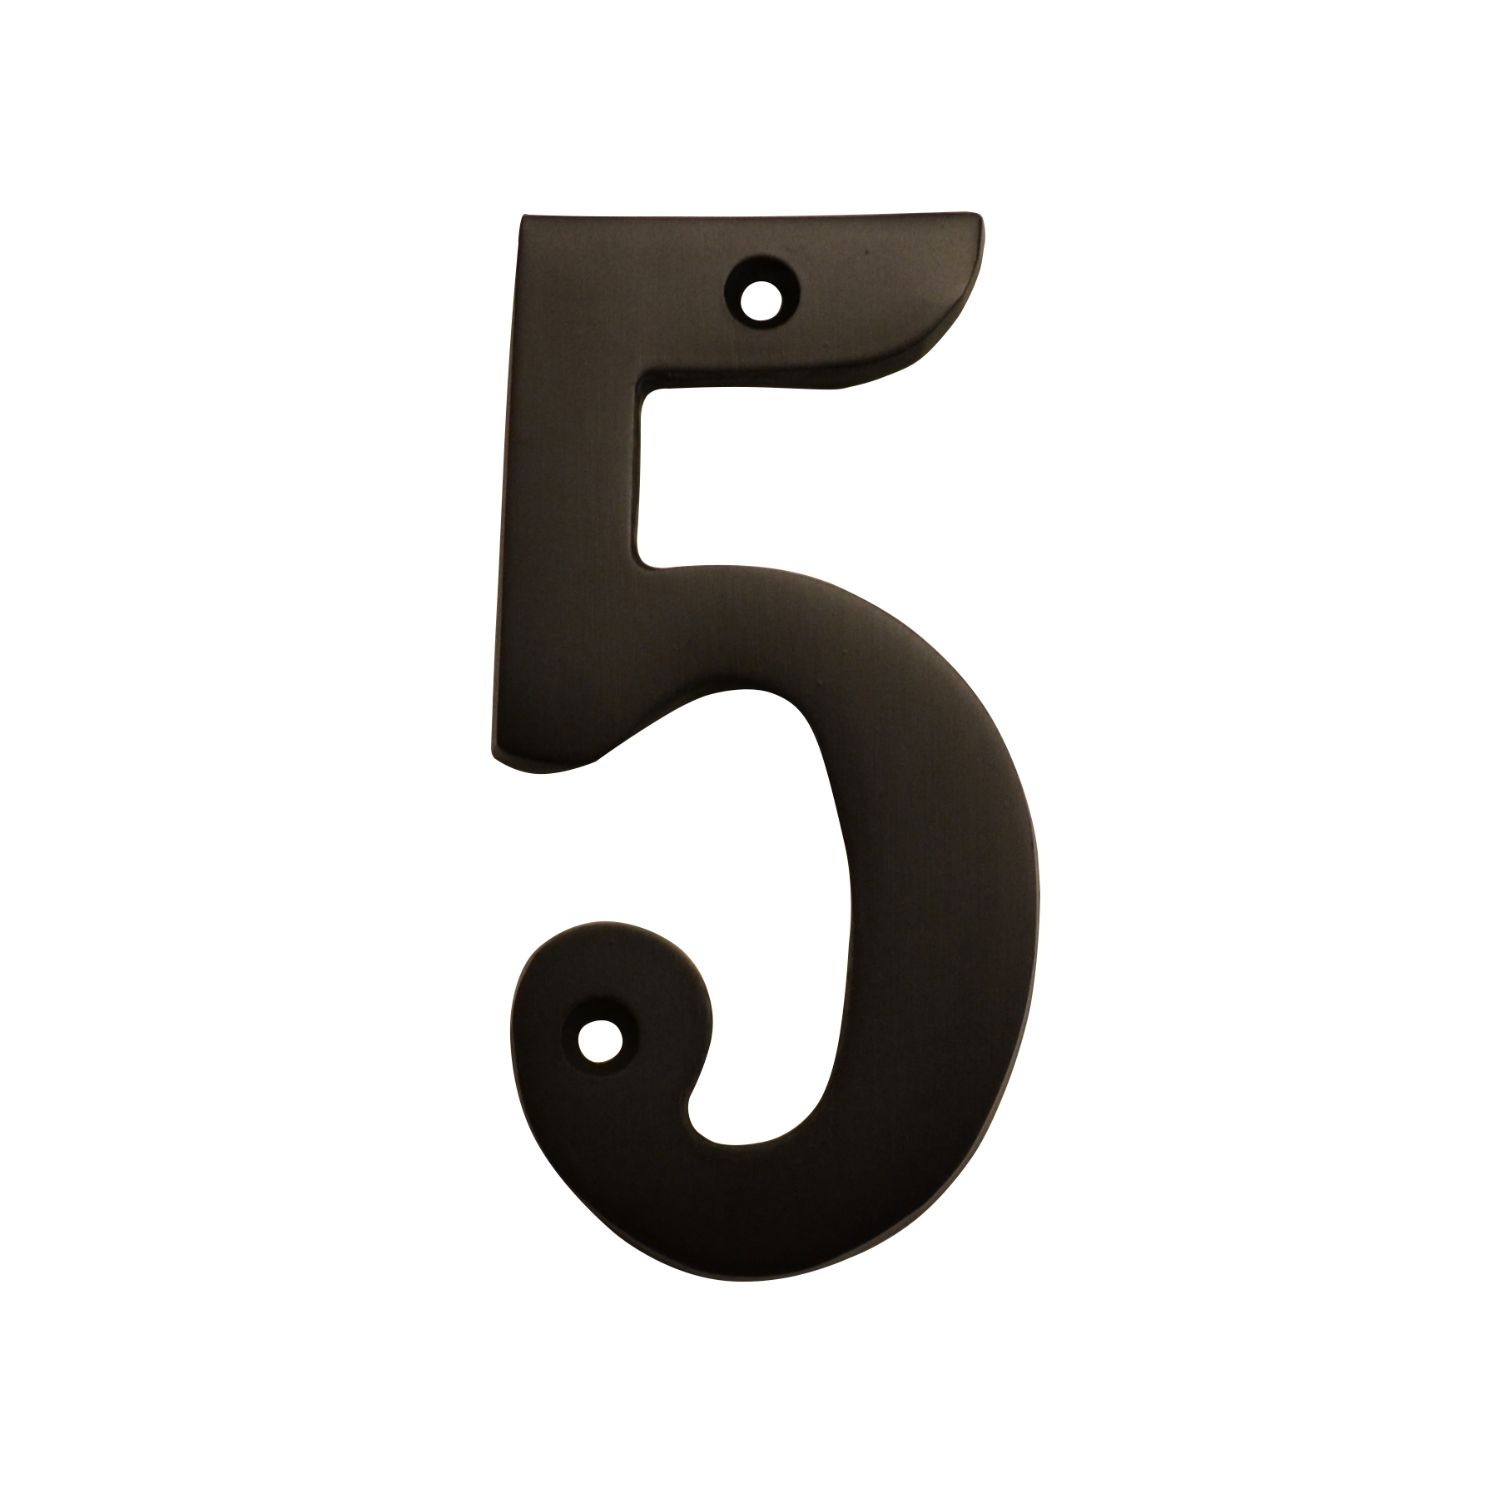 HOUSE NUMBERS, ELEGANT House Numbers — Oil Rubbed Bronze-5